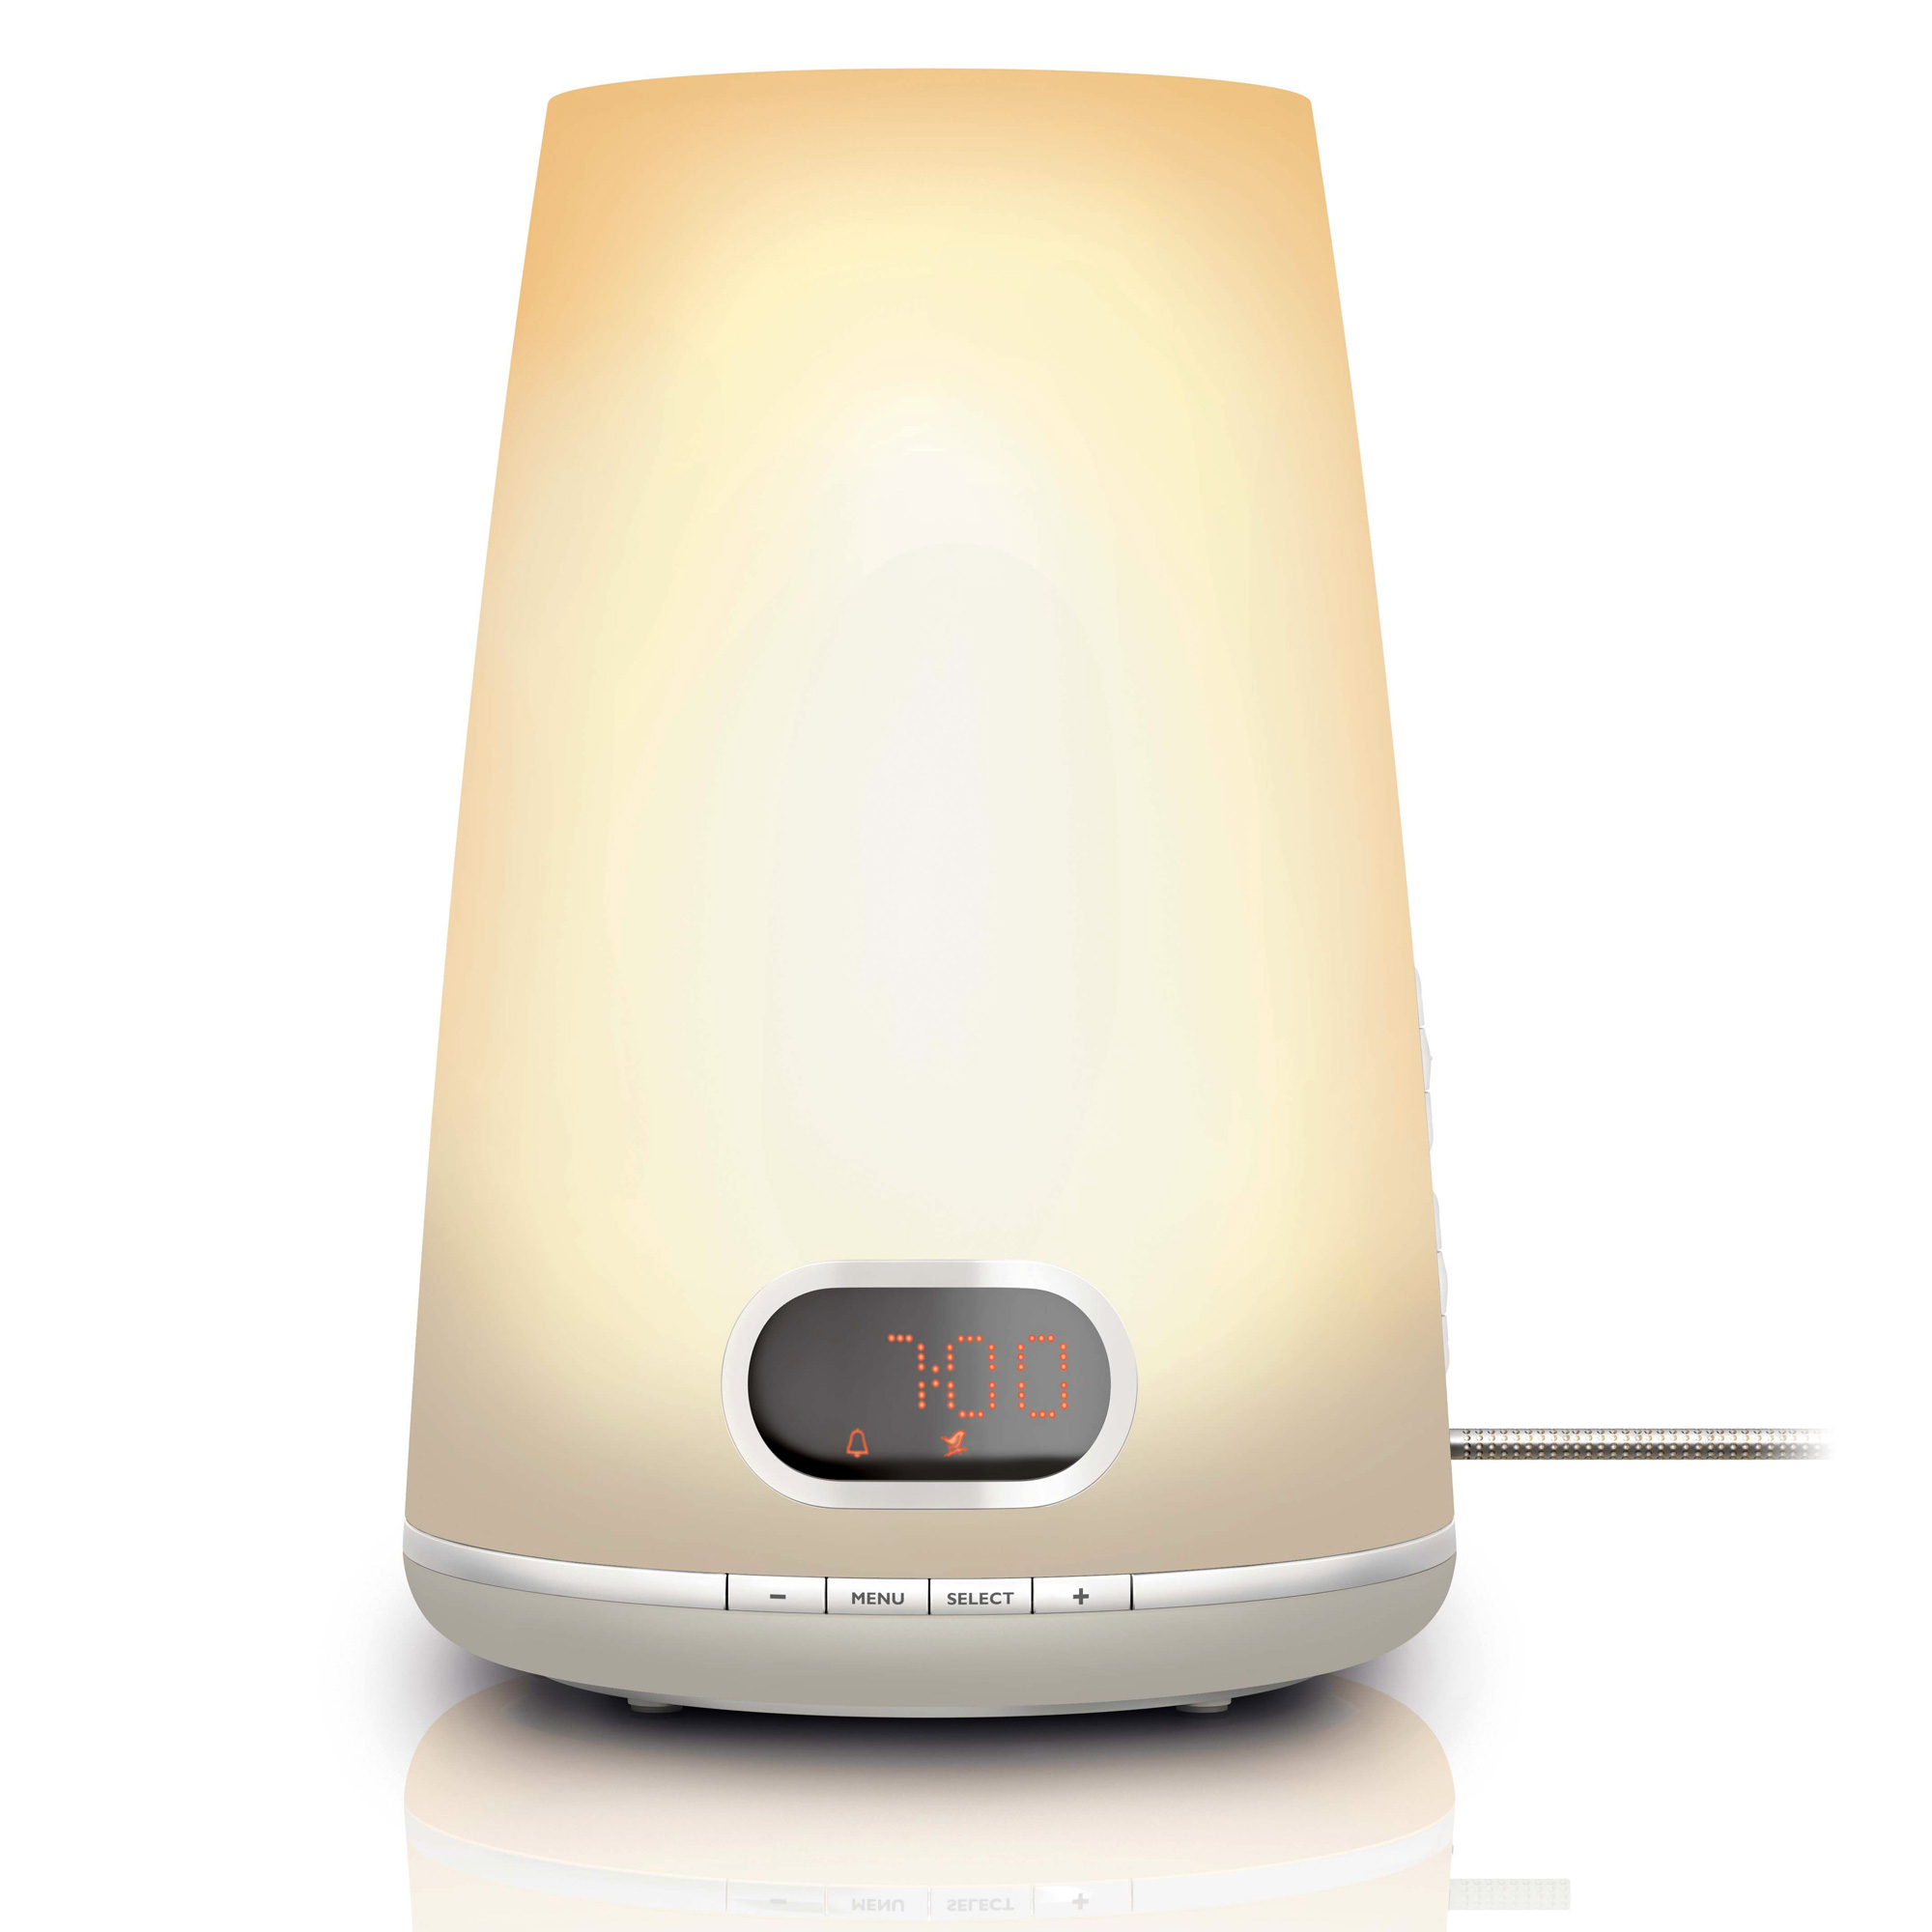 radio r veil lampe philips veil lumi re hf3470 frais de traitement de commande offerts. Black Bedroom Furniture Sets. Home Design Ideas